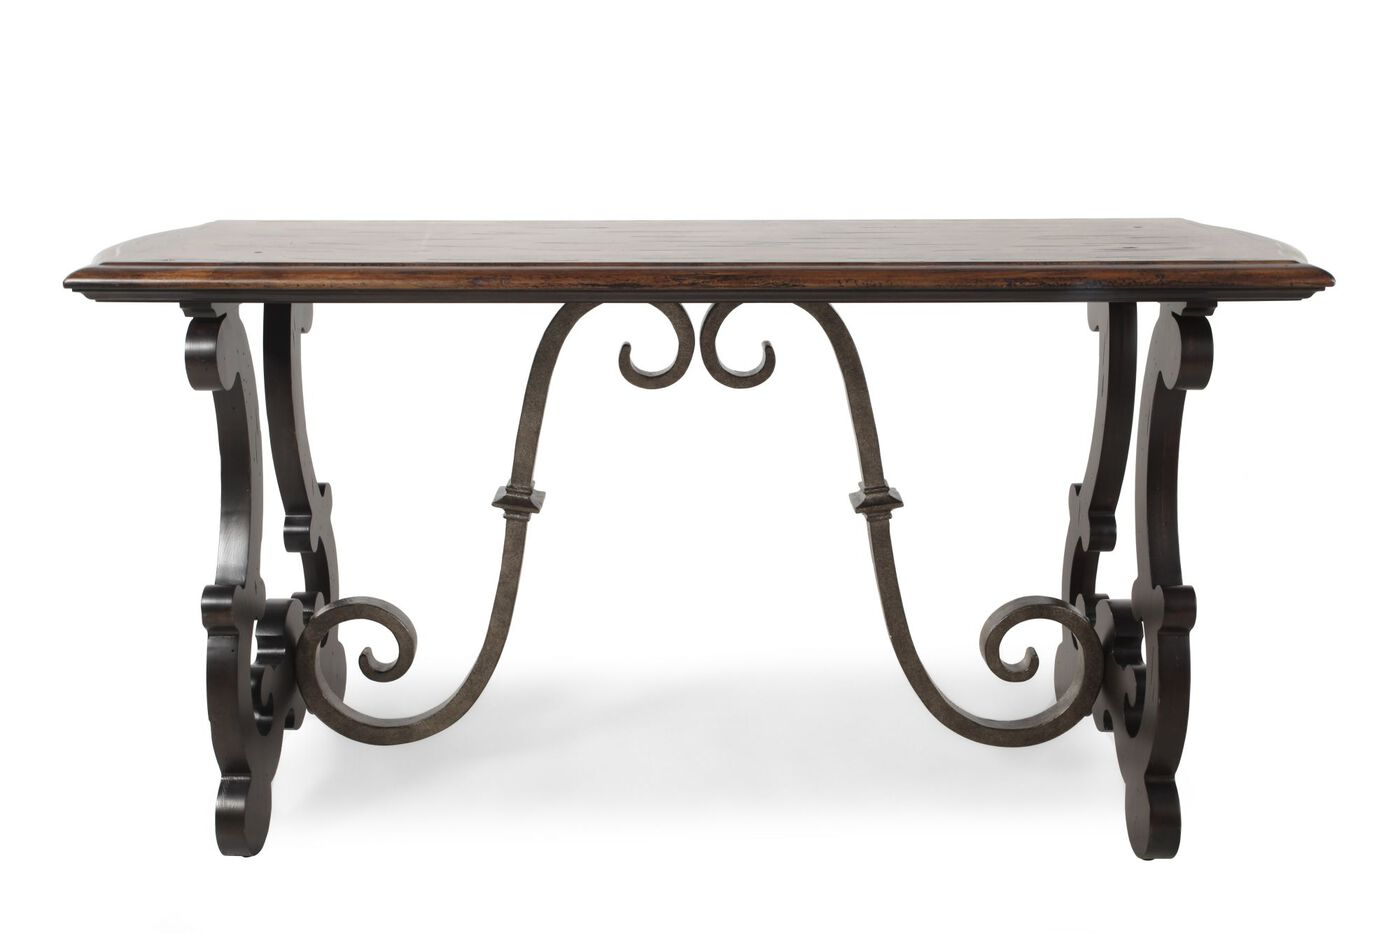 Scrolled pedestal traditional sofa table in aged pewter mathis scrolled pedestal traditional sofa table in aged pewter geotapseo Gallery